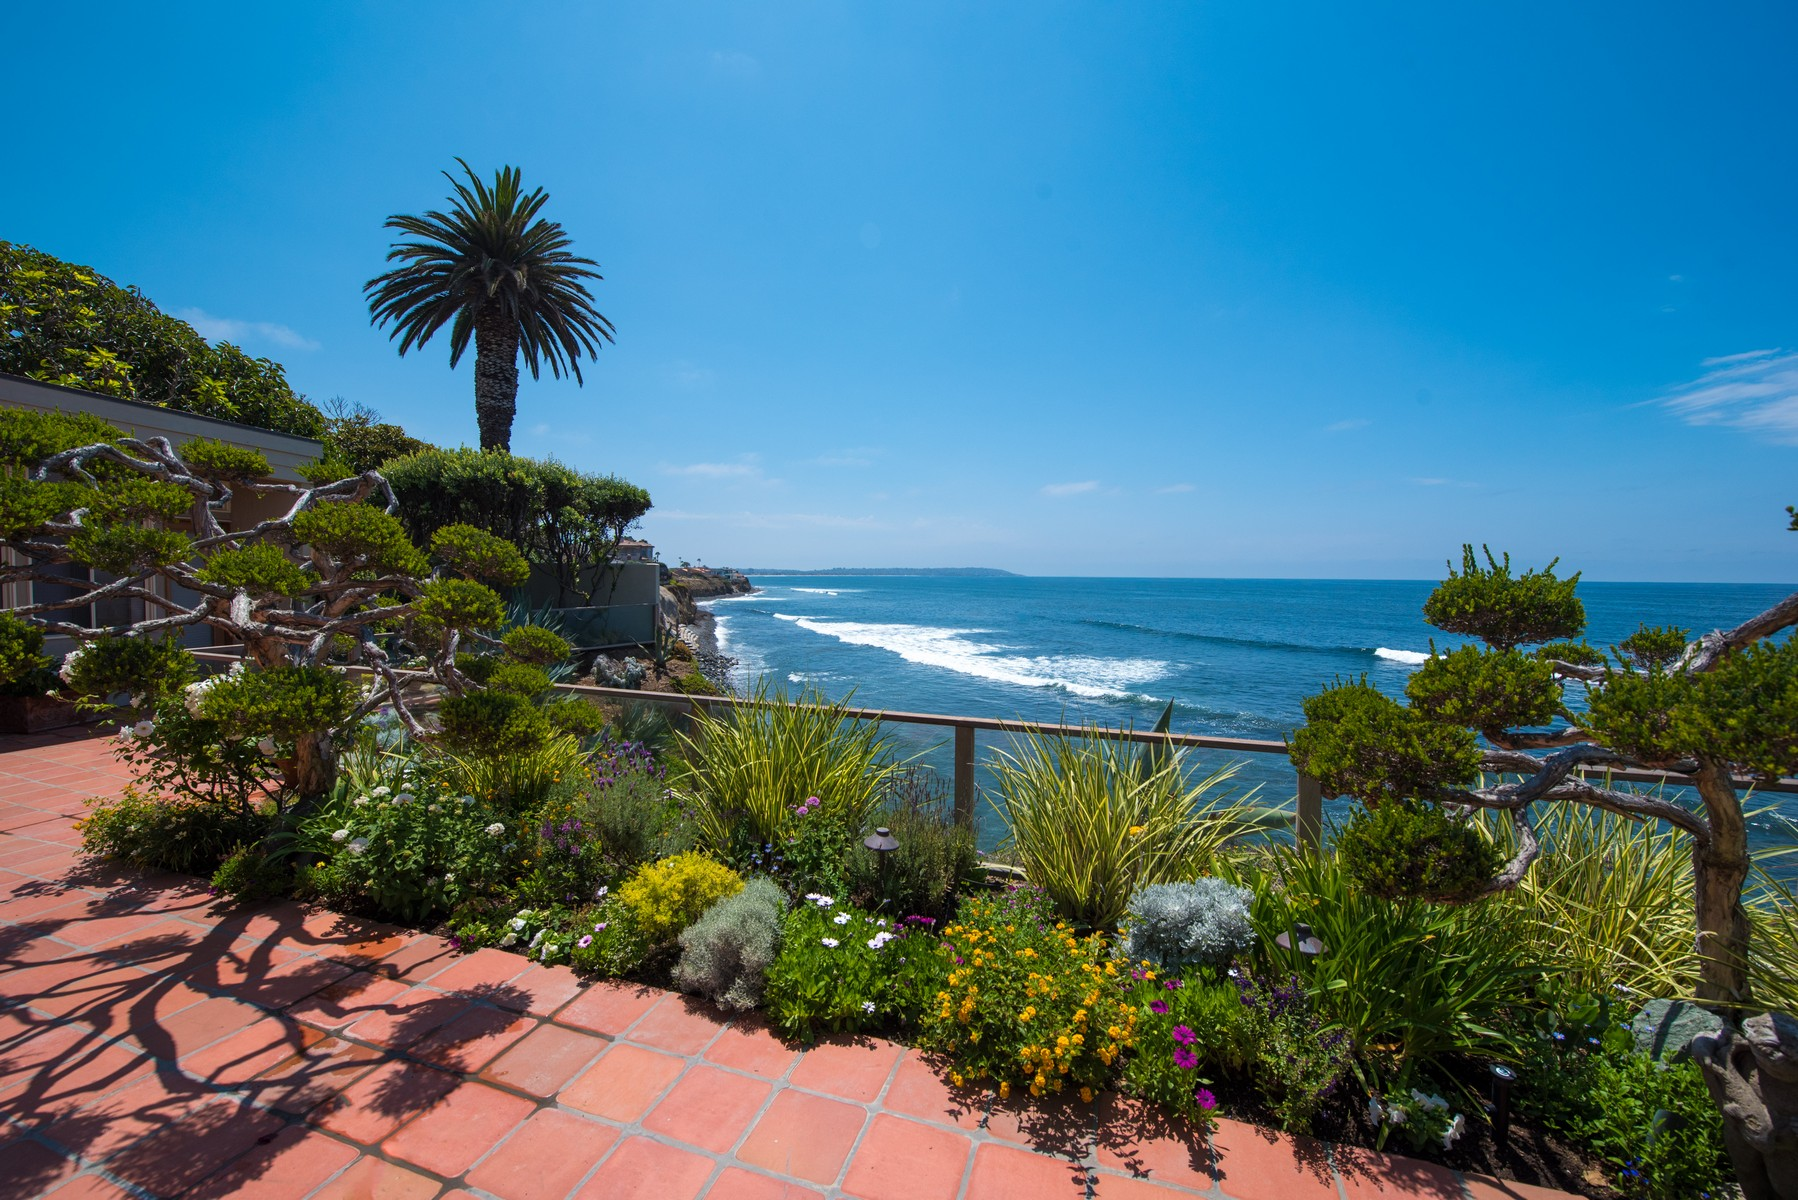 Additional photo for property listing at 310 Forward Street  La Jolla, California 92037 Estados Unidos